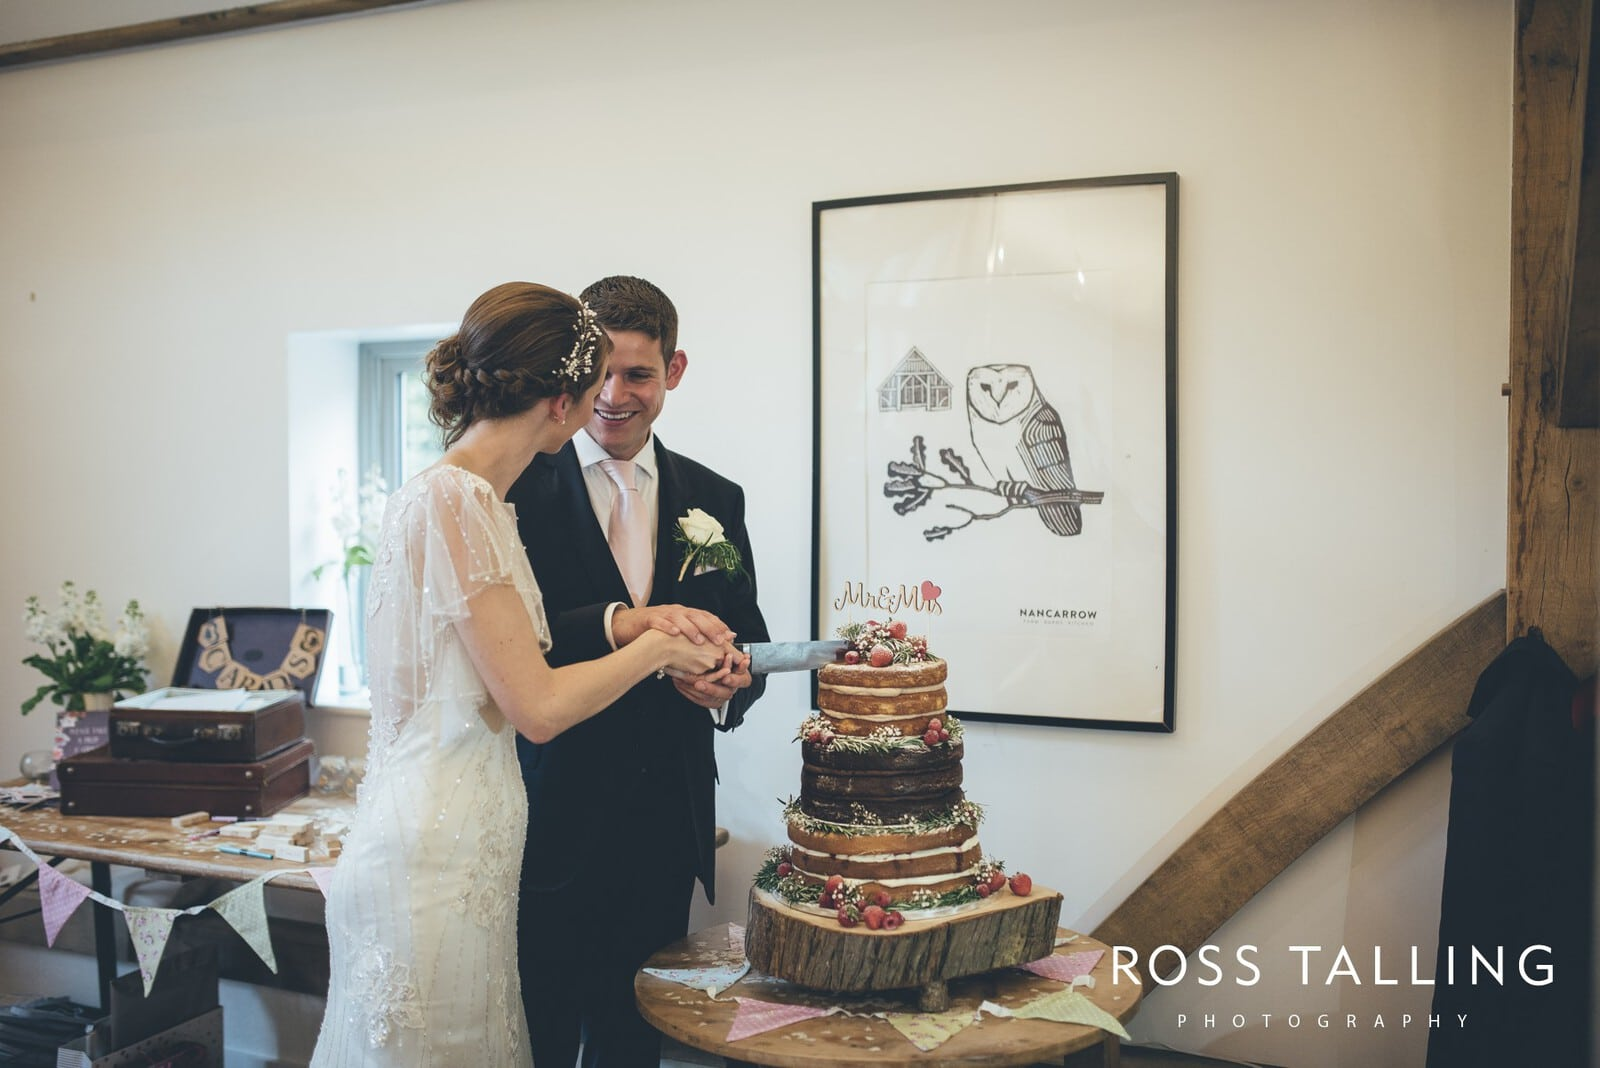 Wedding Photography Cornwall - Nancarrow Farm - Jess & Dave_0092